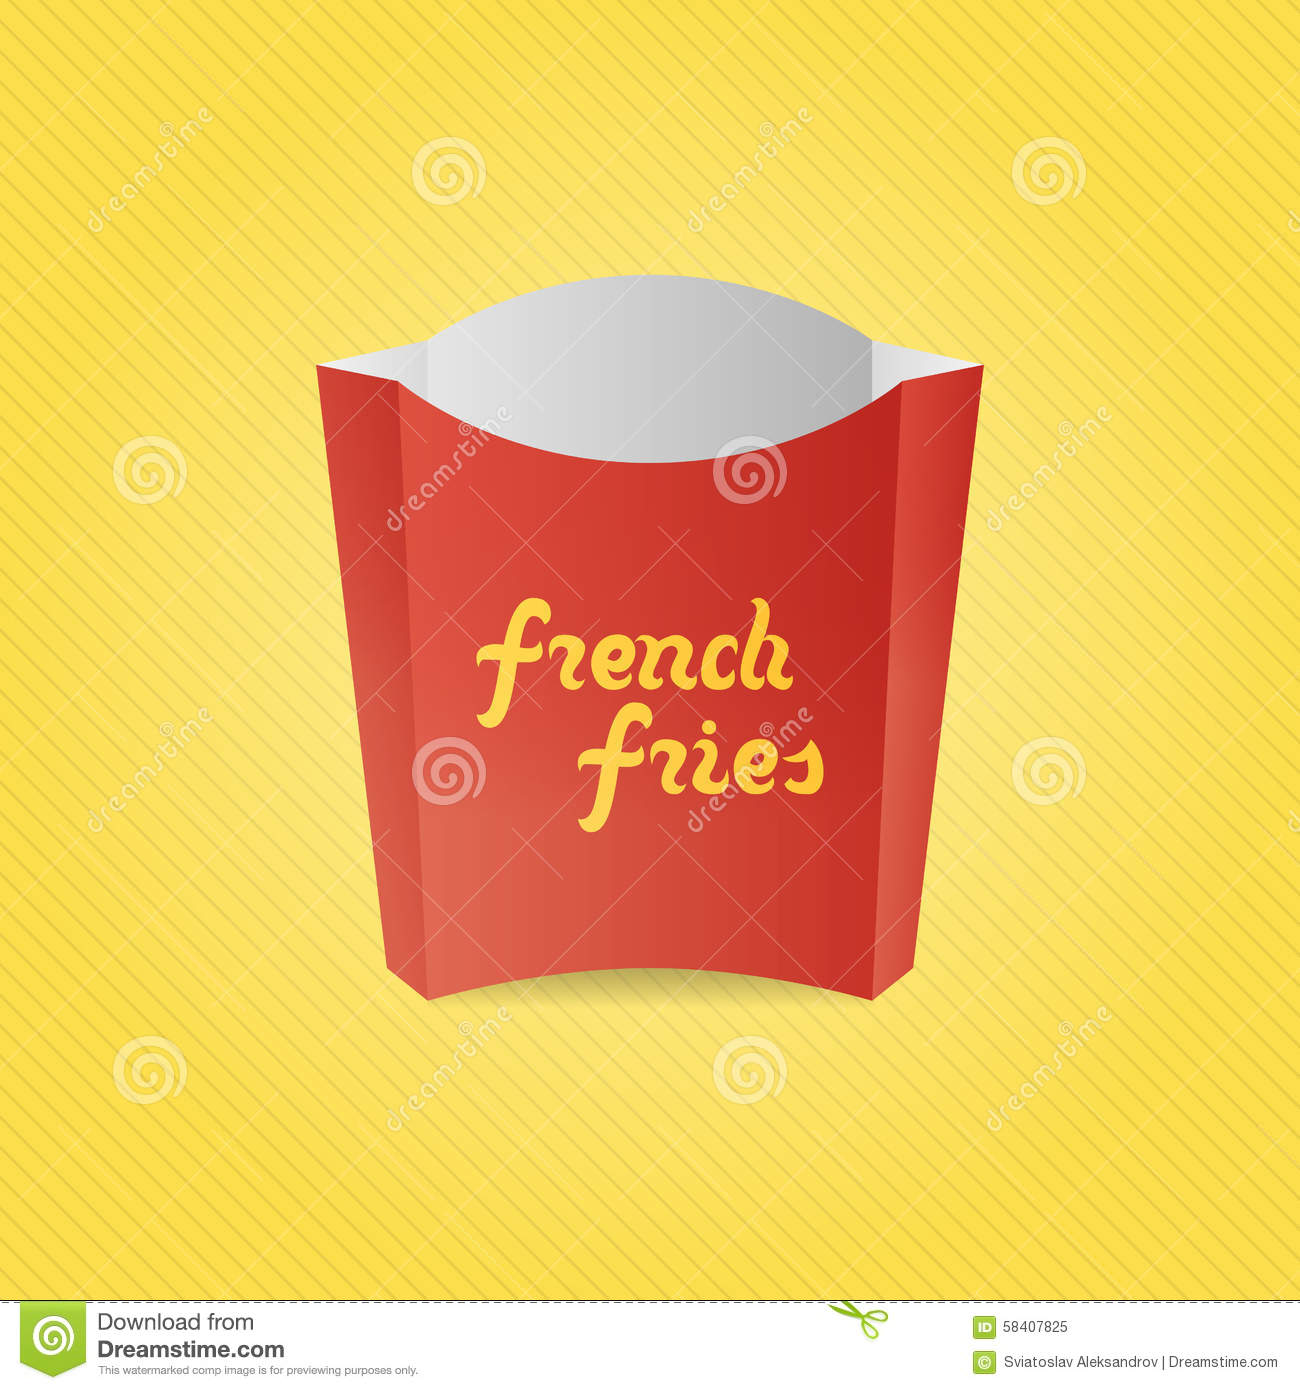 Realistic french fries red paper box cartoon vector for French fries packaging template